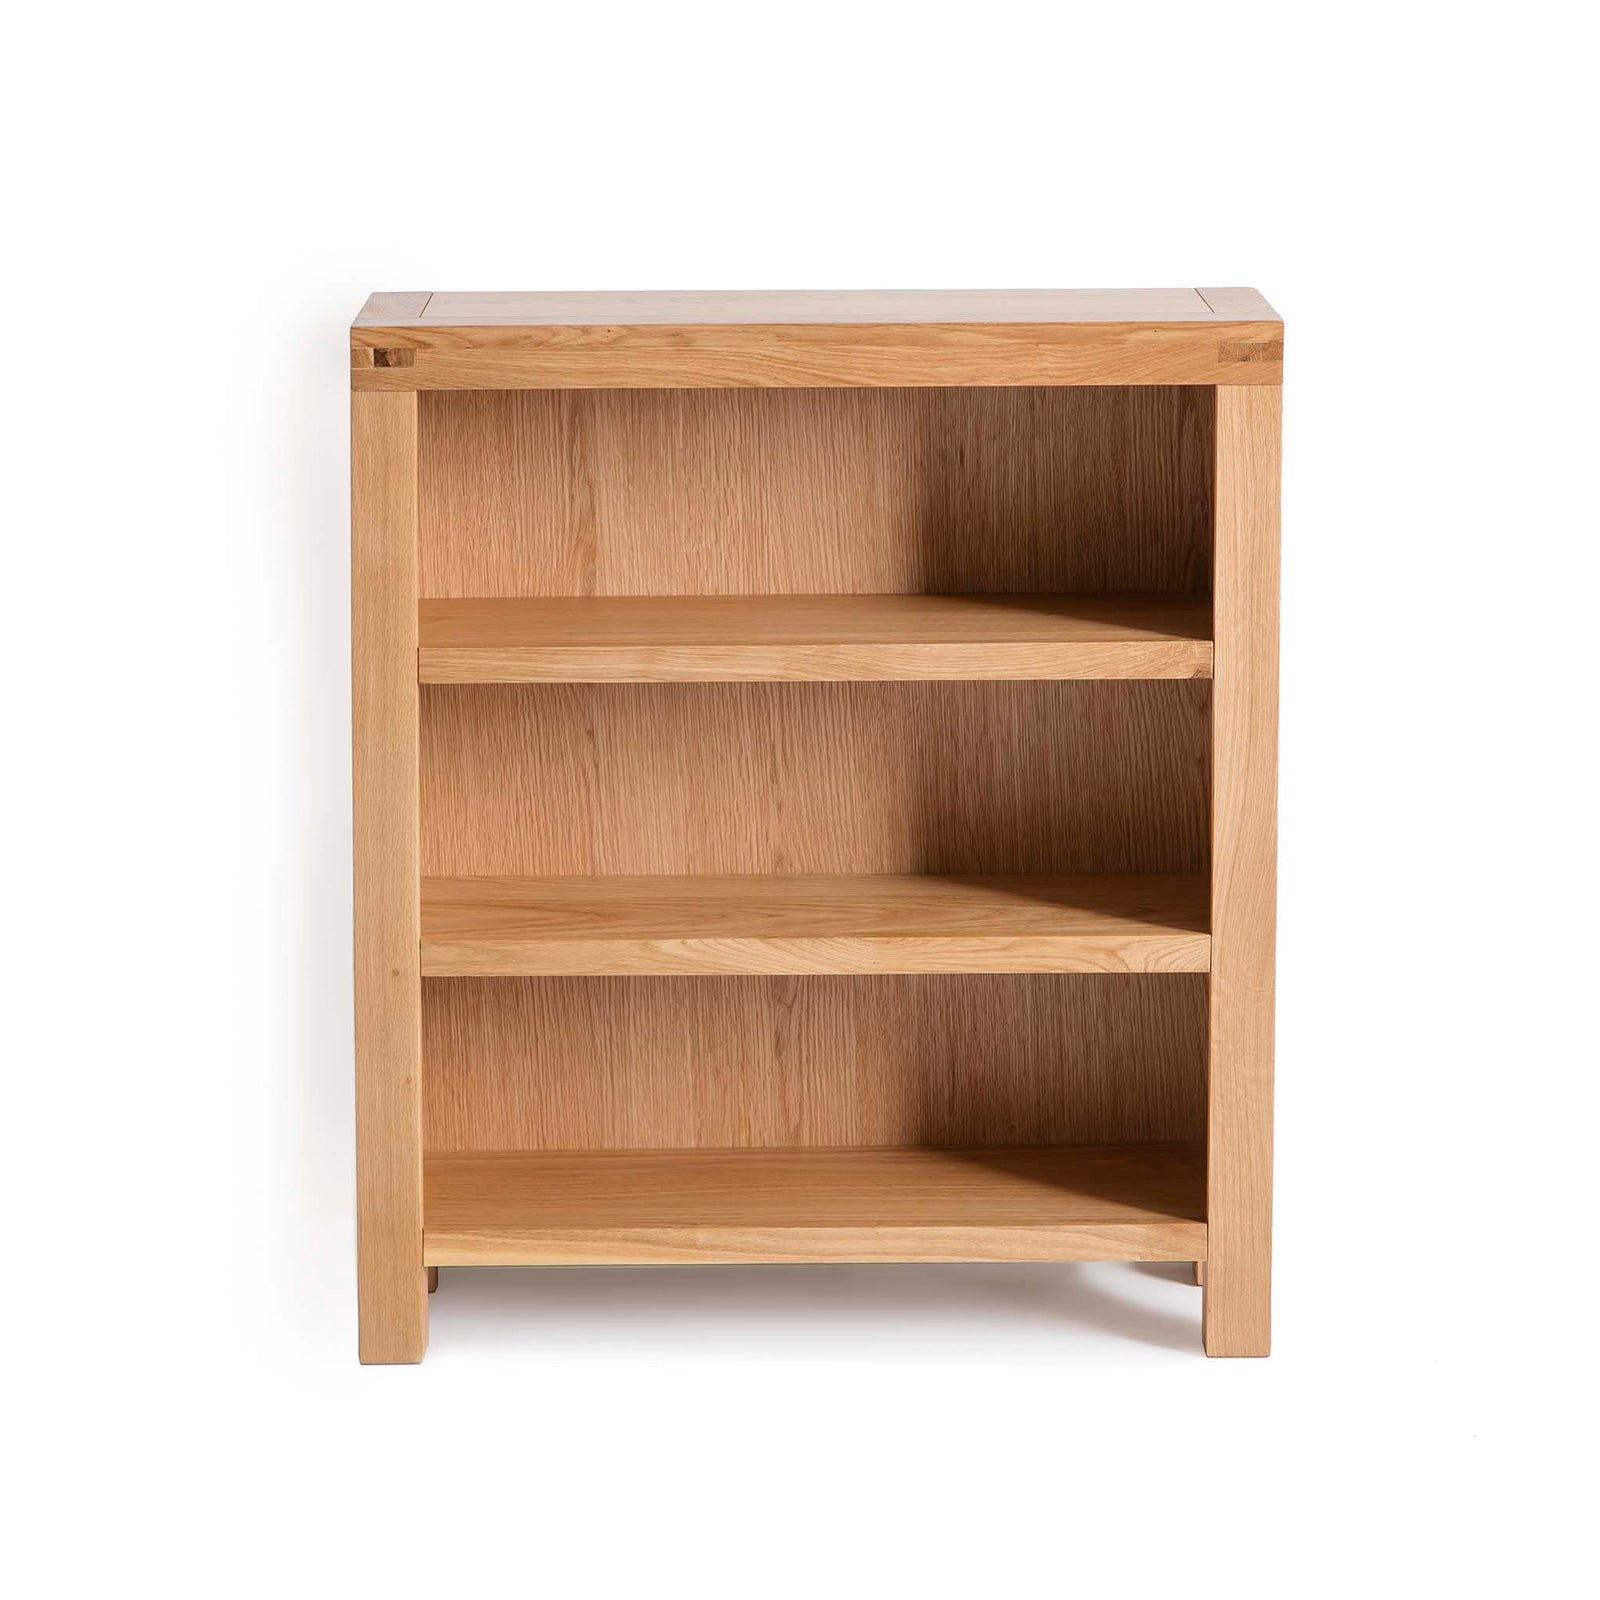 Oak Bookcases Solid Wood Painted Roseland Furniture